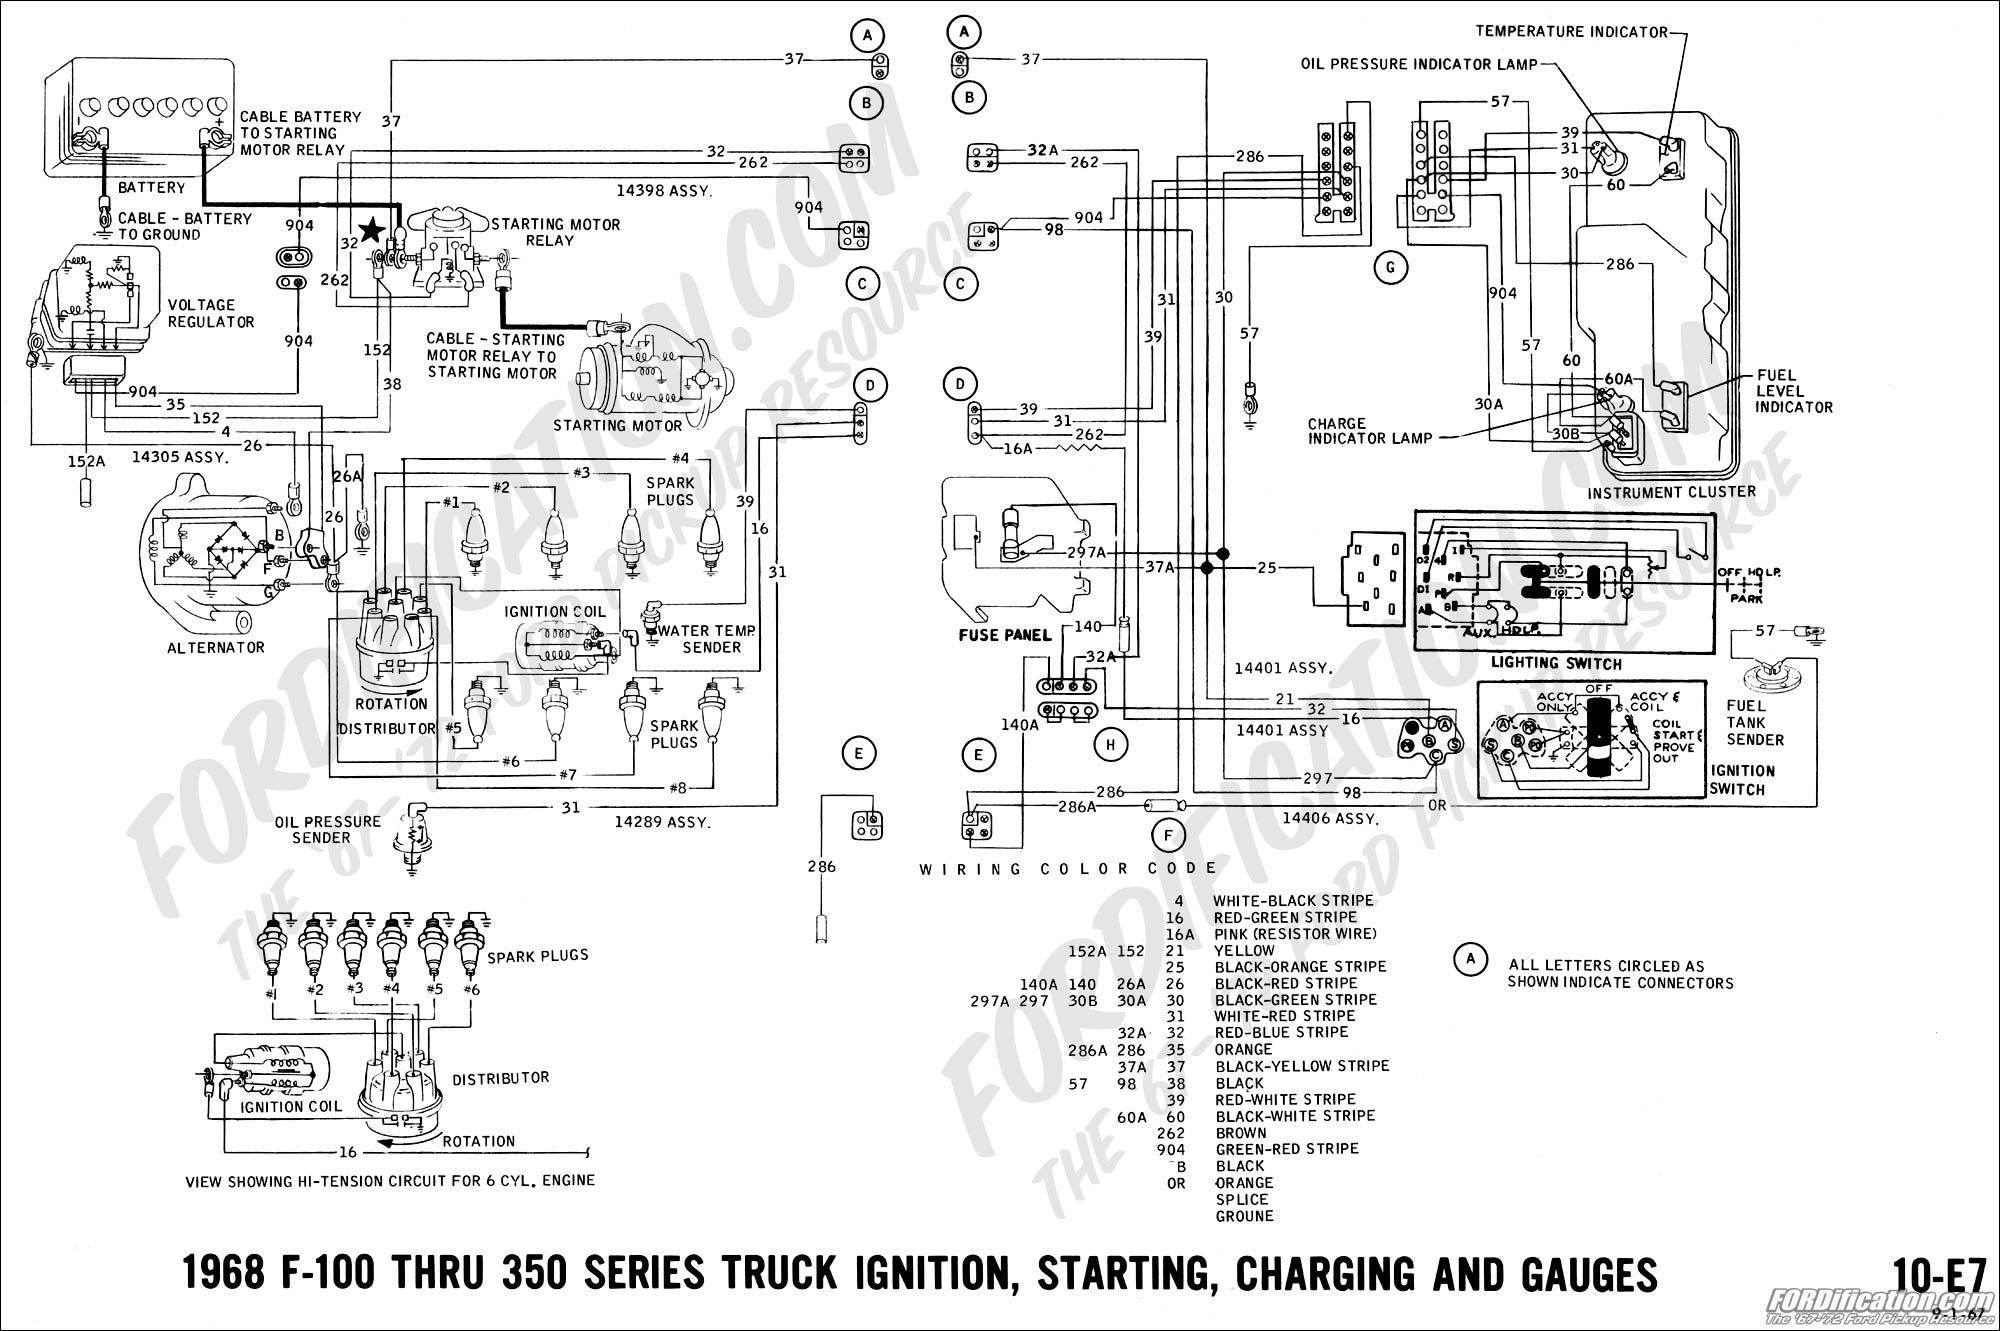 68 09 new wiring harness (help!!) the fordification com forums 1977 International Truck Wiring Diagram at readyjetset.co